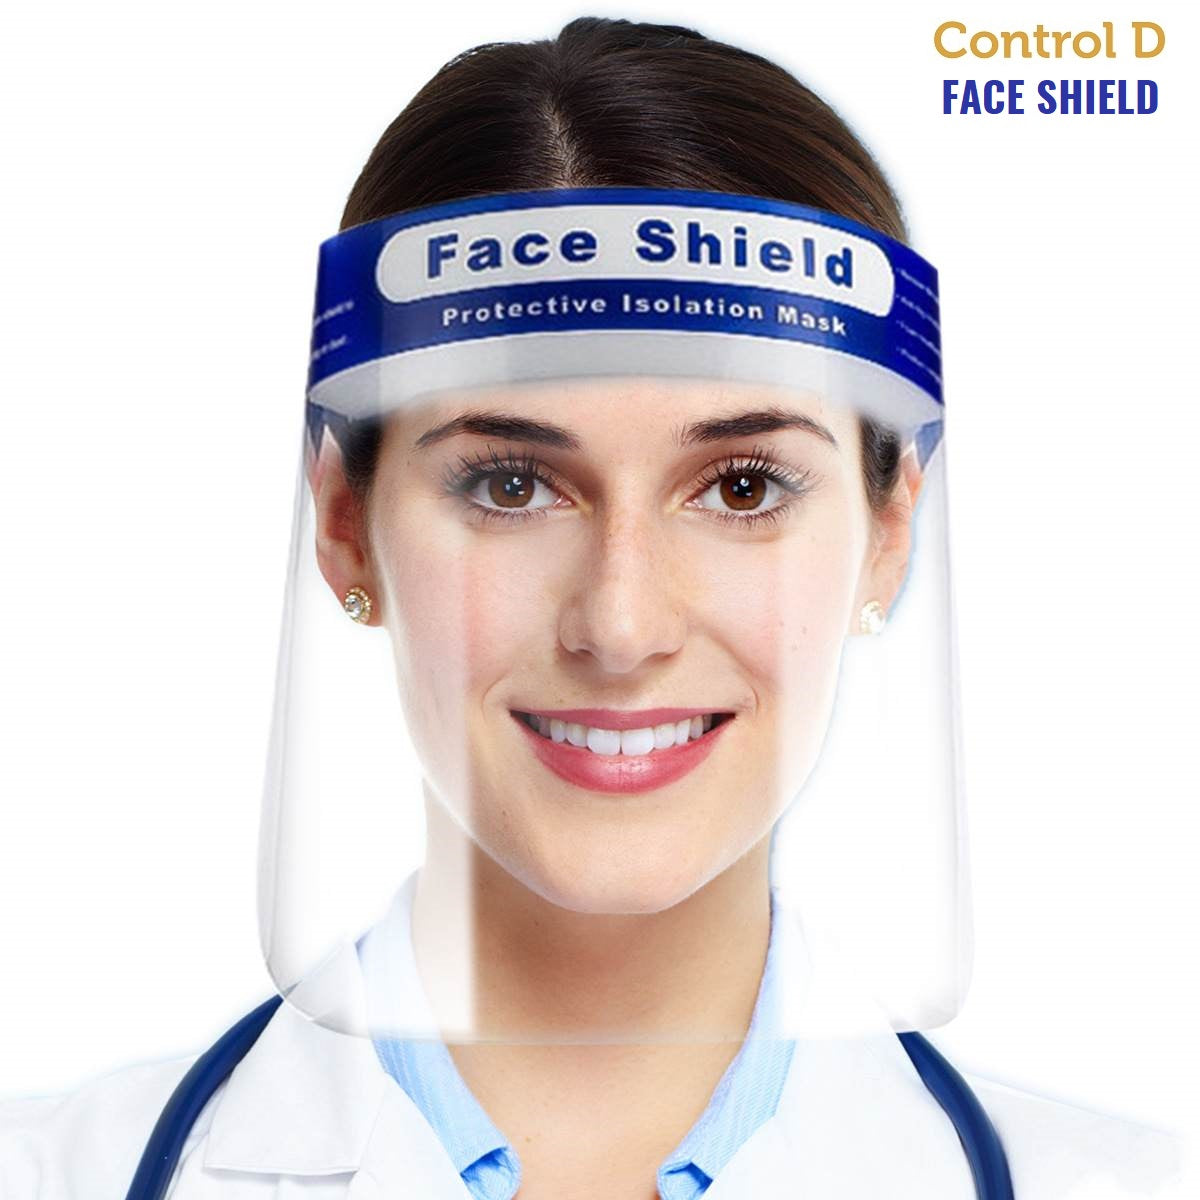 Control D Face Shield - Pack of 5 Shields